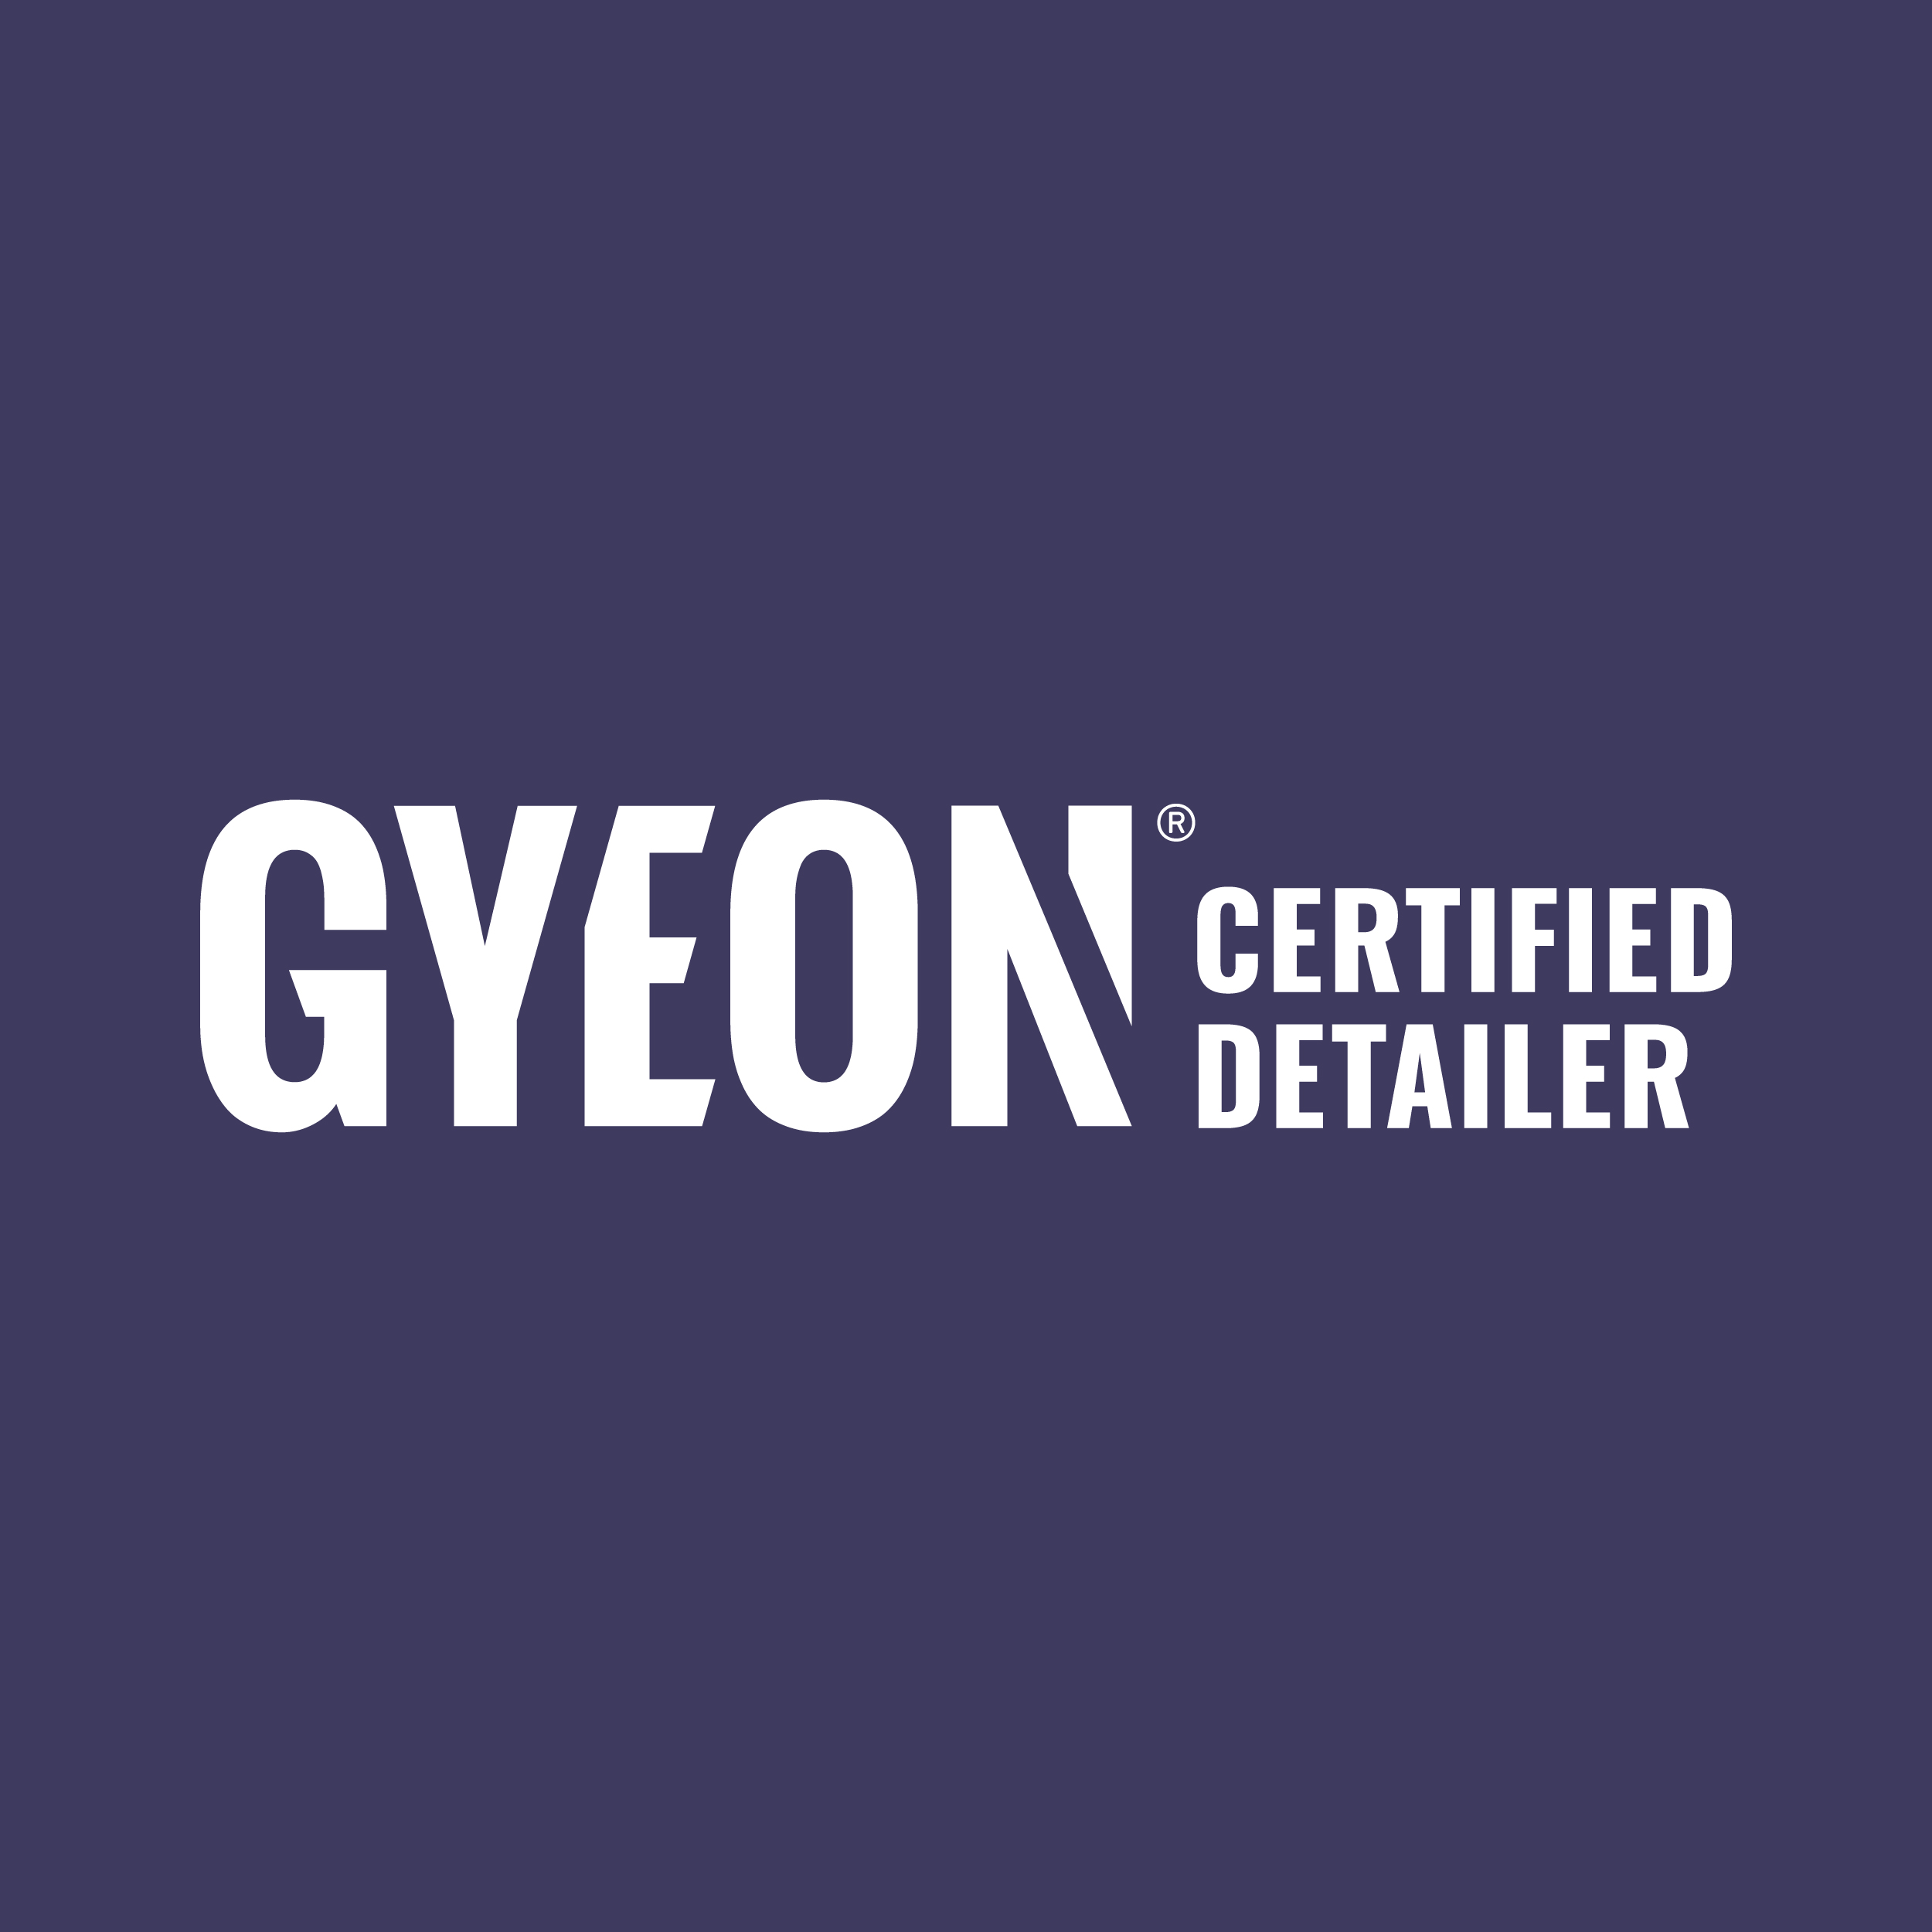 Gyeon Certified Dealer August precision